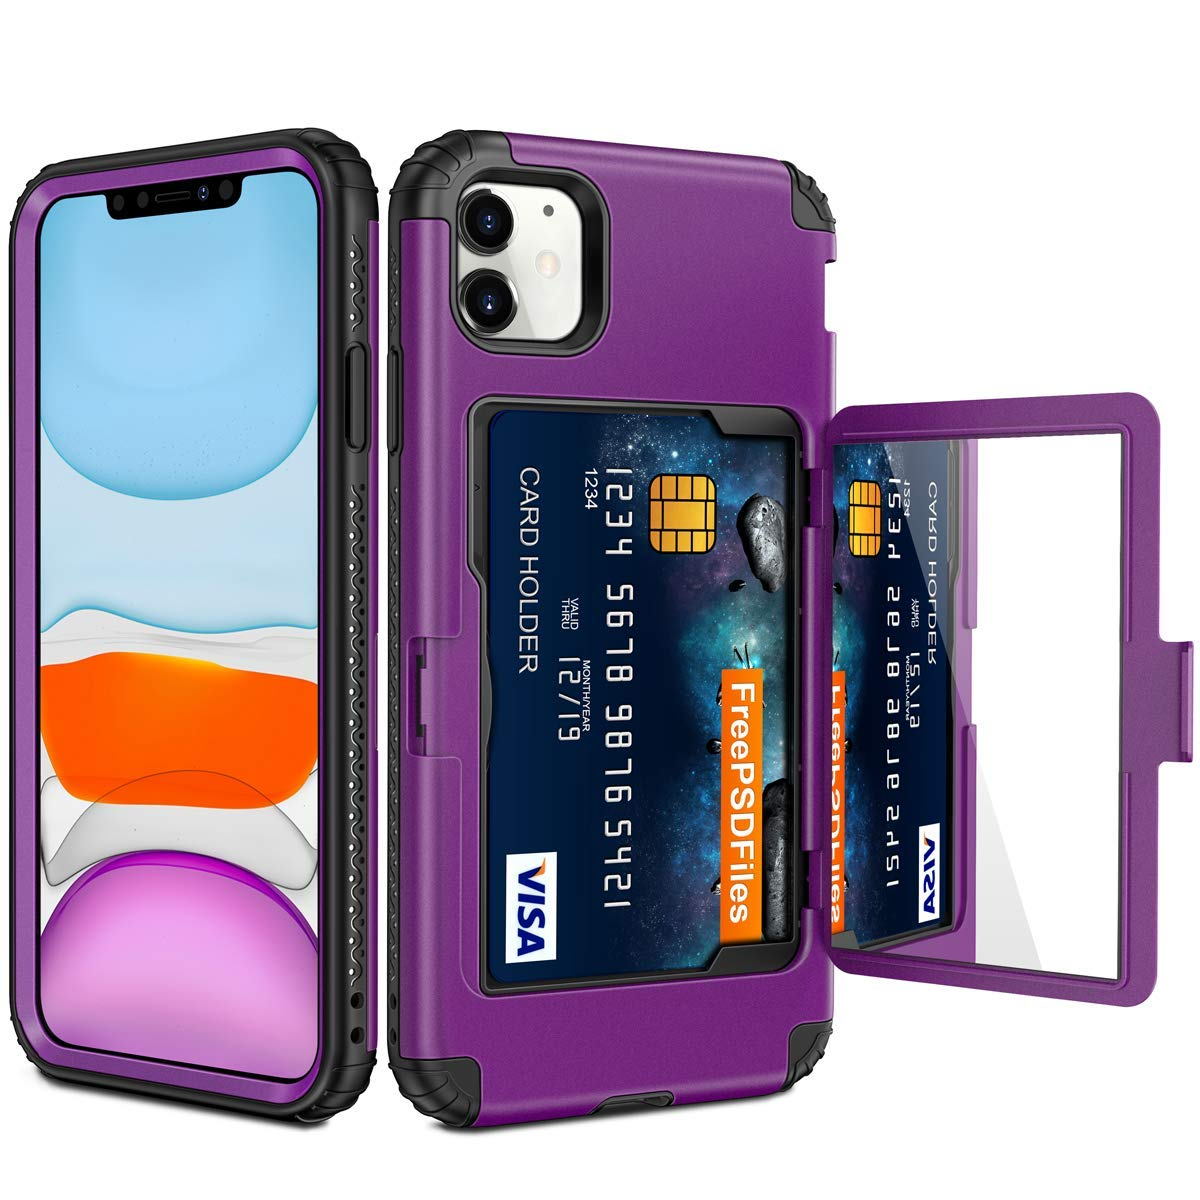 Vofolen for iPhone 11 Case Wallet Credit Card Holder Slot Heavy Duty Full-Body Protection Hybrid Bumper Armor Protective Hard Shell with Makeup Mirror Back Pocket Front Bumper for iPhone 11 6.1 Purple